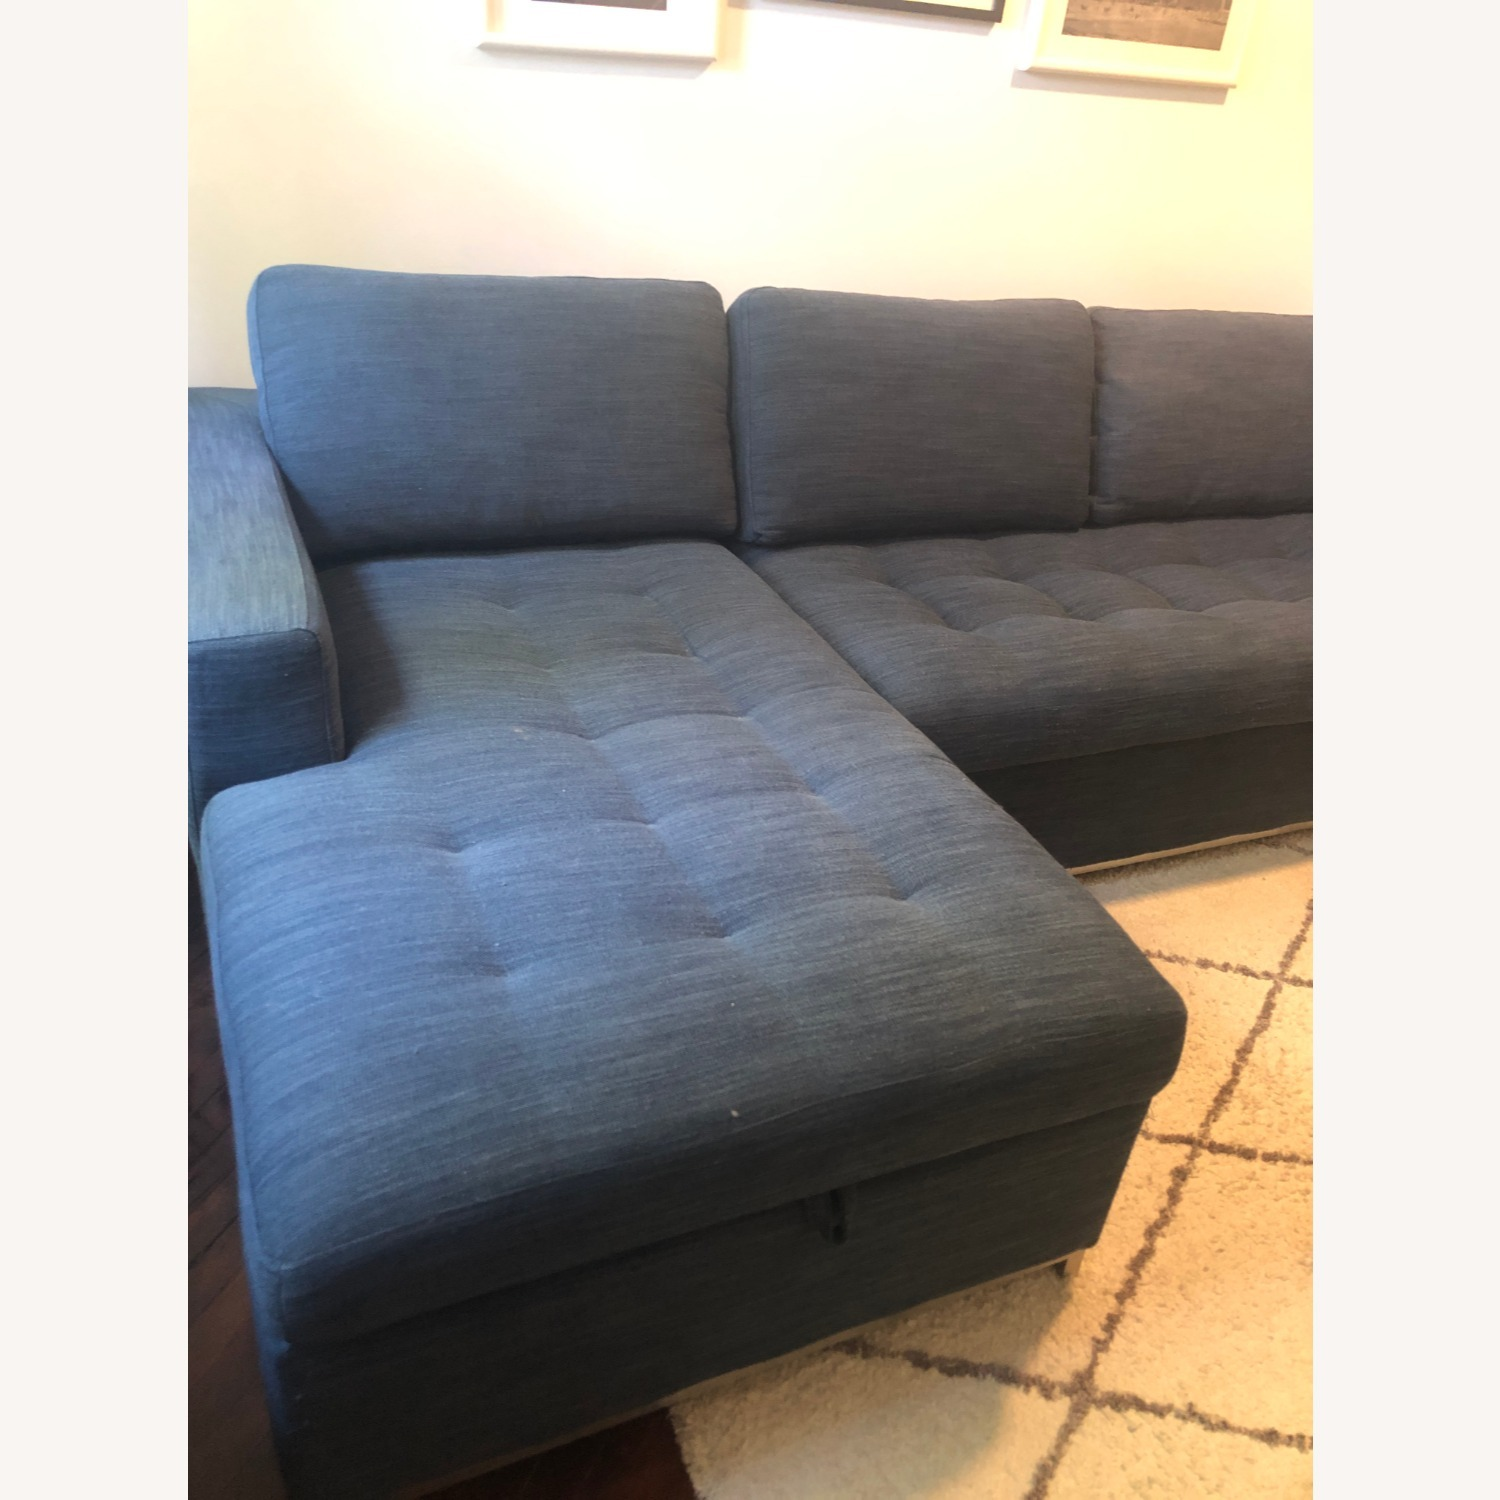 Article Soma Midnight Blue Sleeper Sectional Sofa - image-7